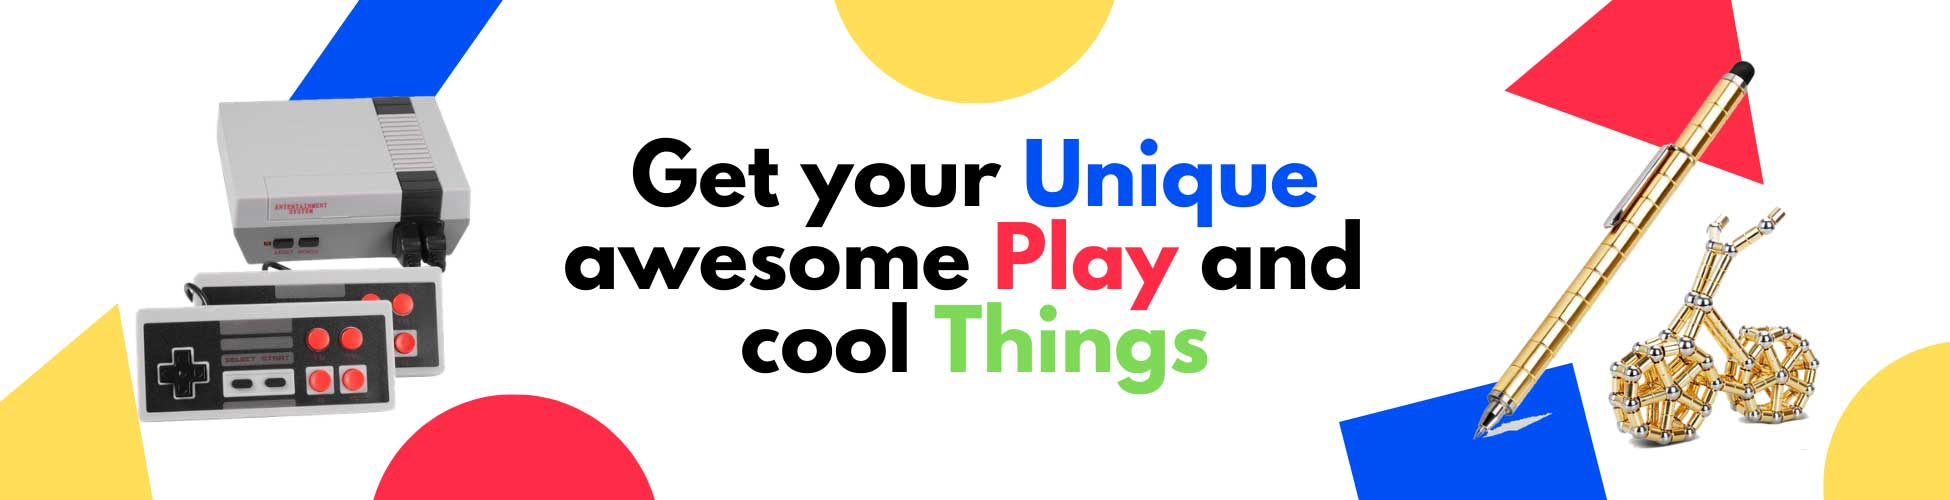 Unique-Play-Things